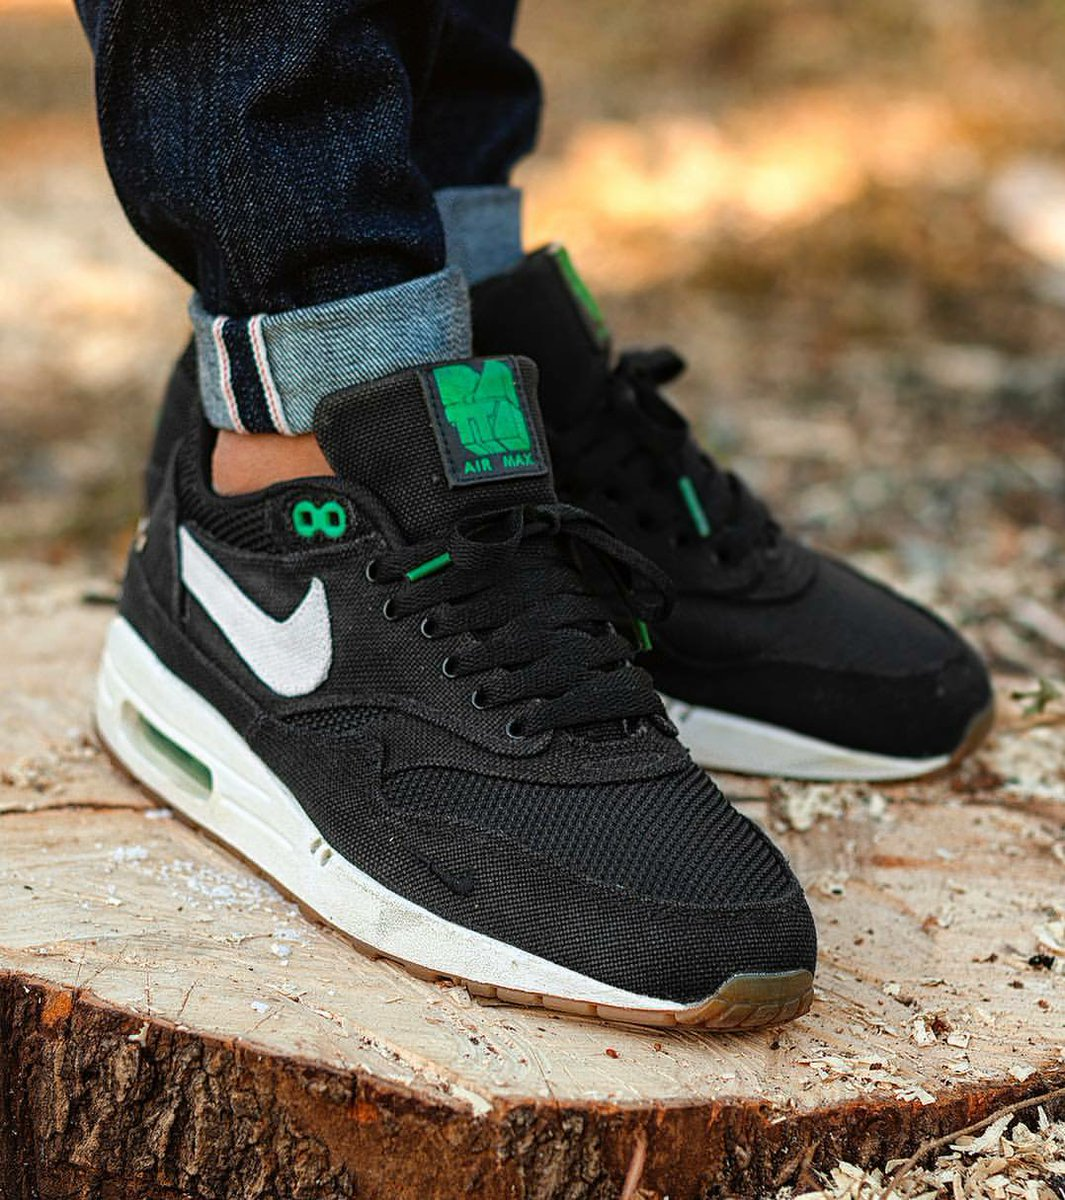 c343ac7209 ... cheap sneakers game on twitter nike air max 1 x patta lucky green 2009  t.